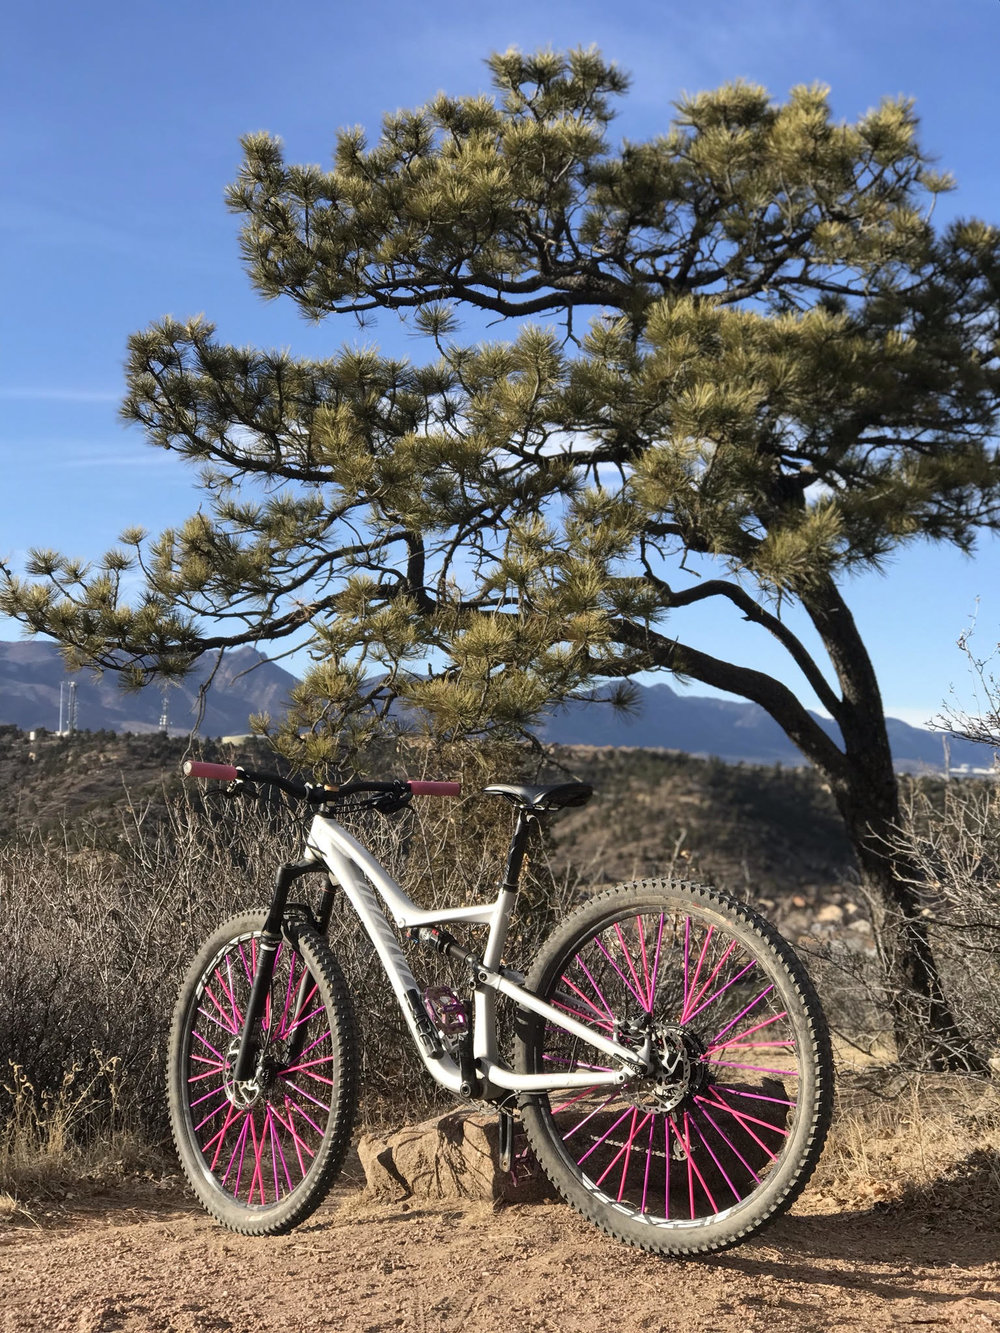 Specialized Rumor - This is my first full suspension bike. The suspension allows me to go over obstacles with ease and allows me to jump more easily since I can preload the suspension. It's definitely a ShredWorthy bike!